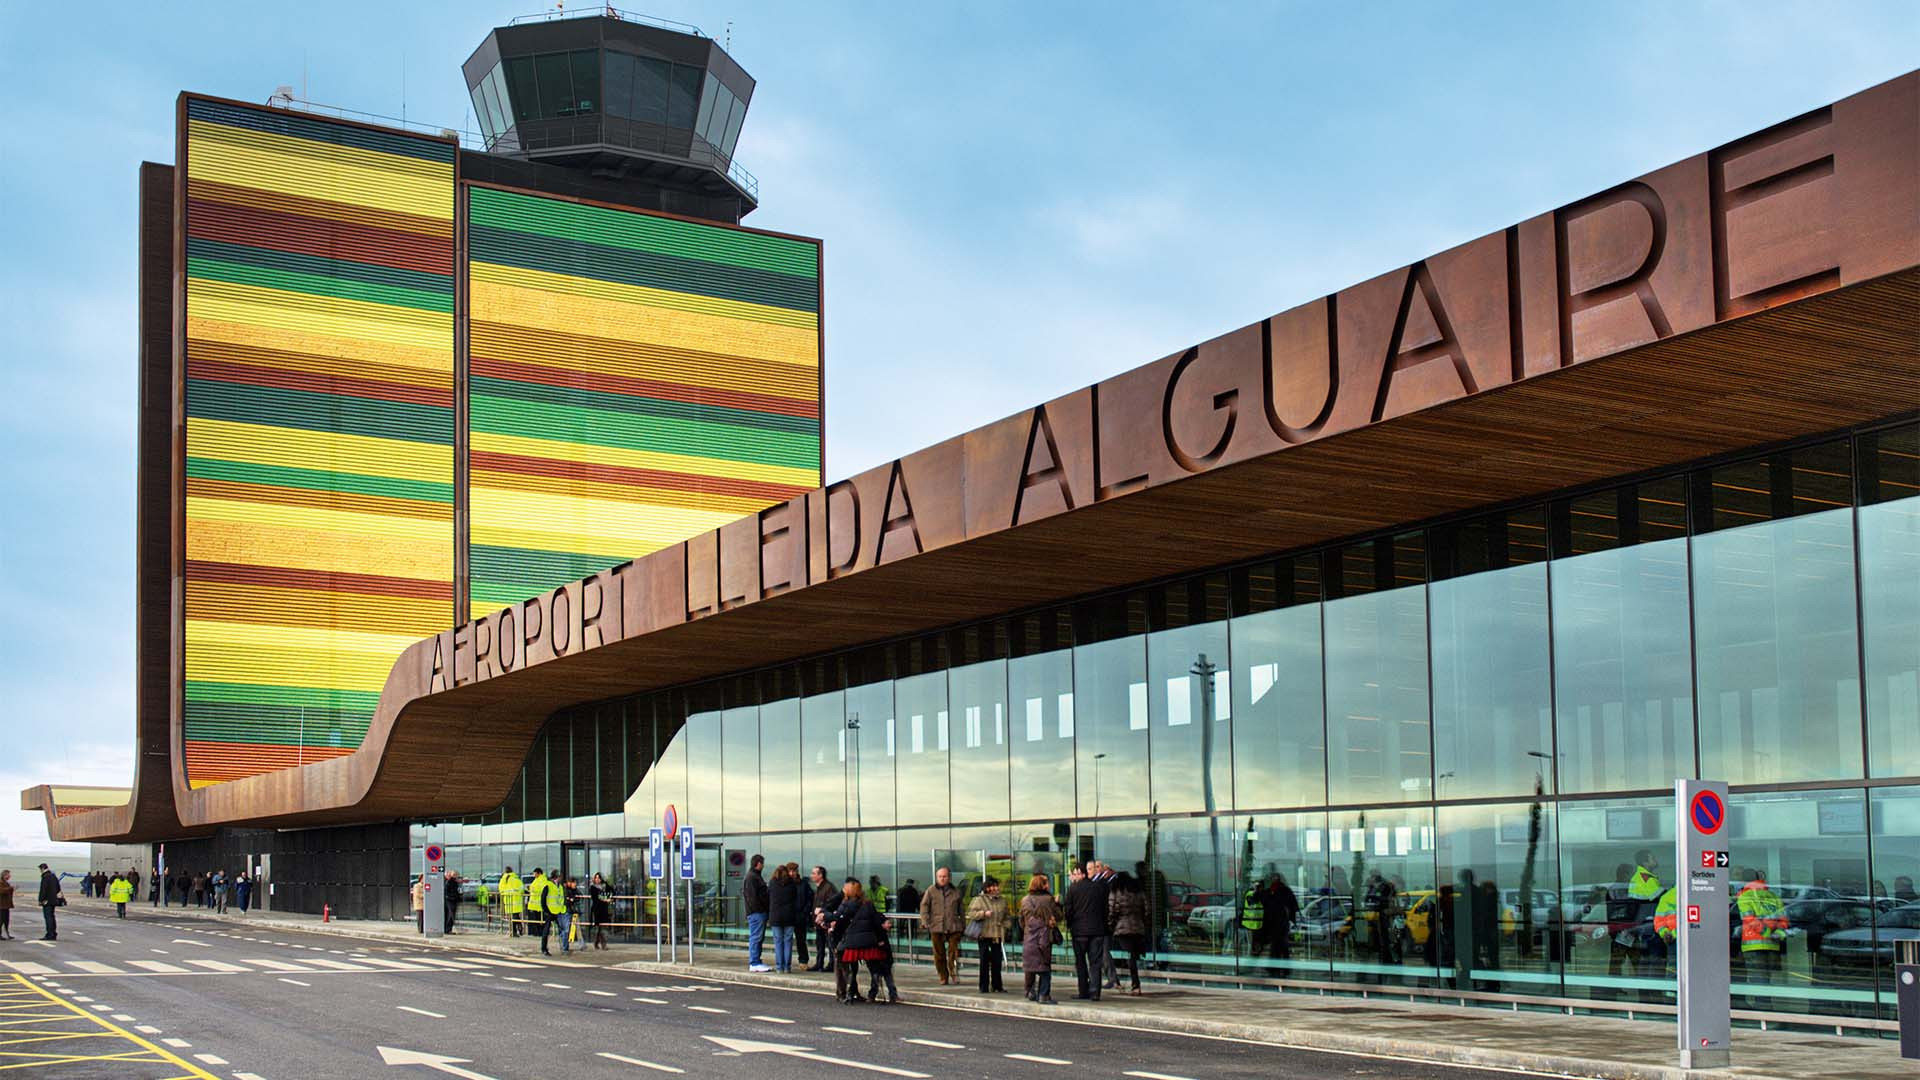 The colourful exterior of Lleida airport, Catalonia, Spain